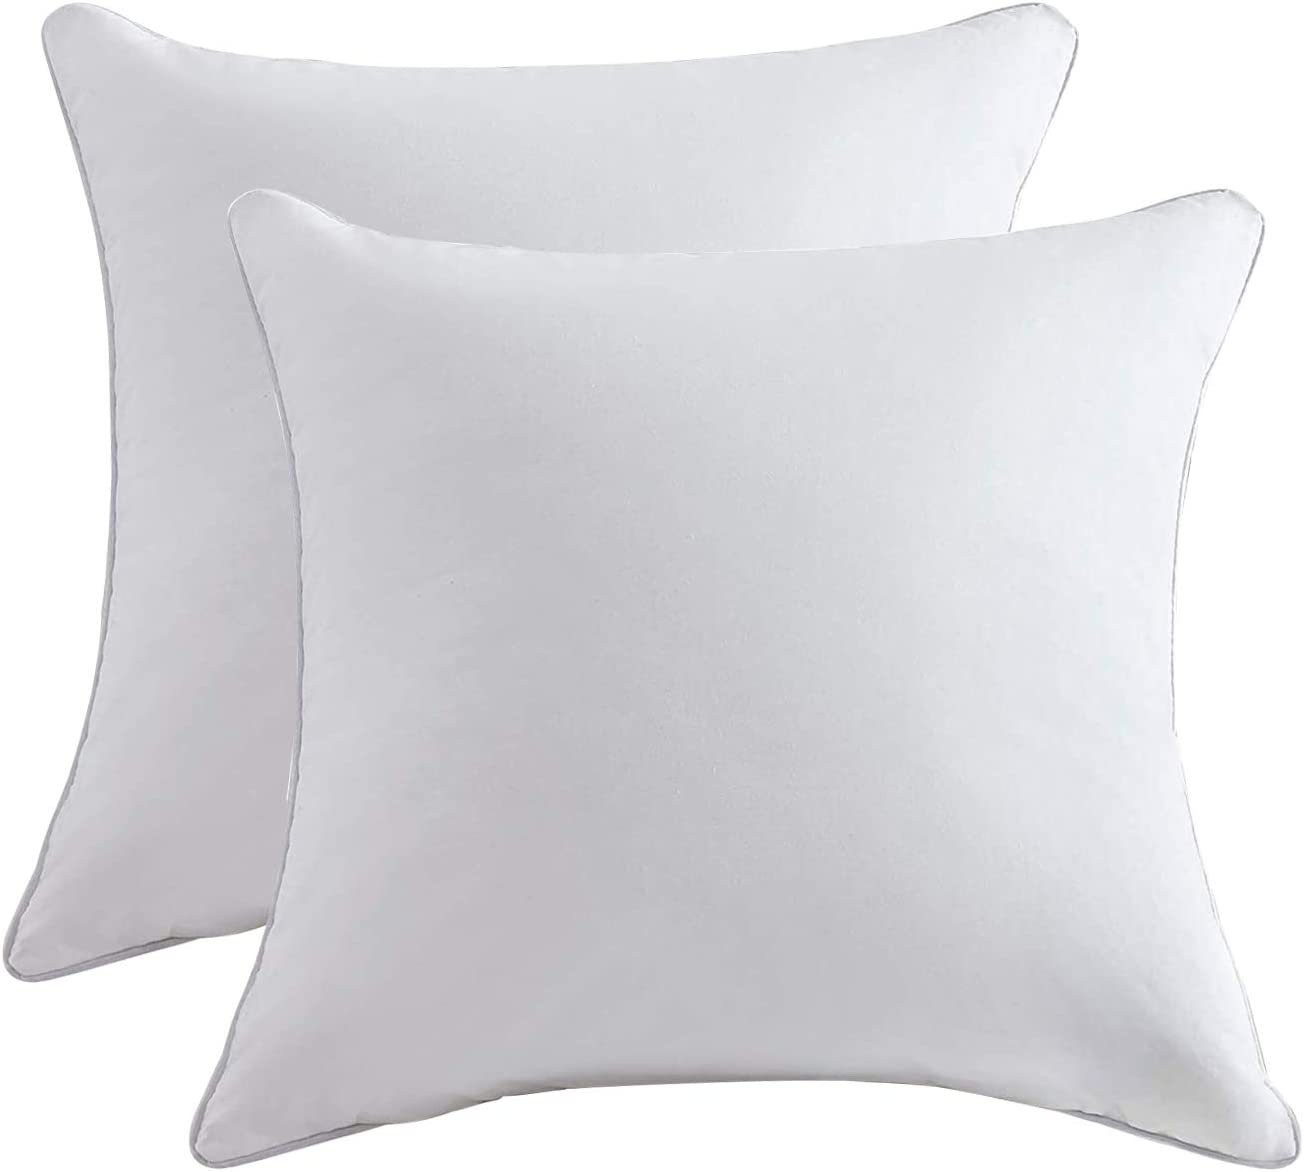 Lipo Throw Pillow Inserts (Pack of 2, White), Decorative Pillows Inserts with 100% Cotton Cover, Square Pillow for Cushion Bed Couch Sofa Car, 20x20 Inch